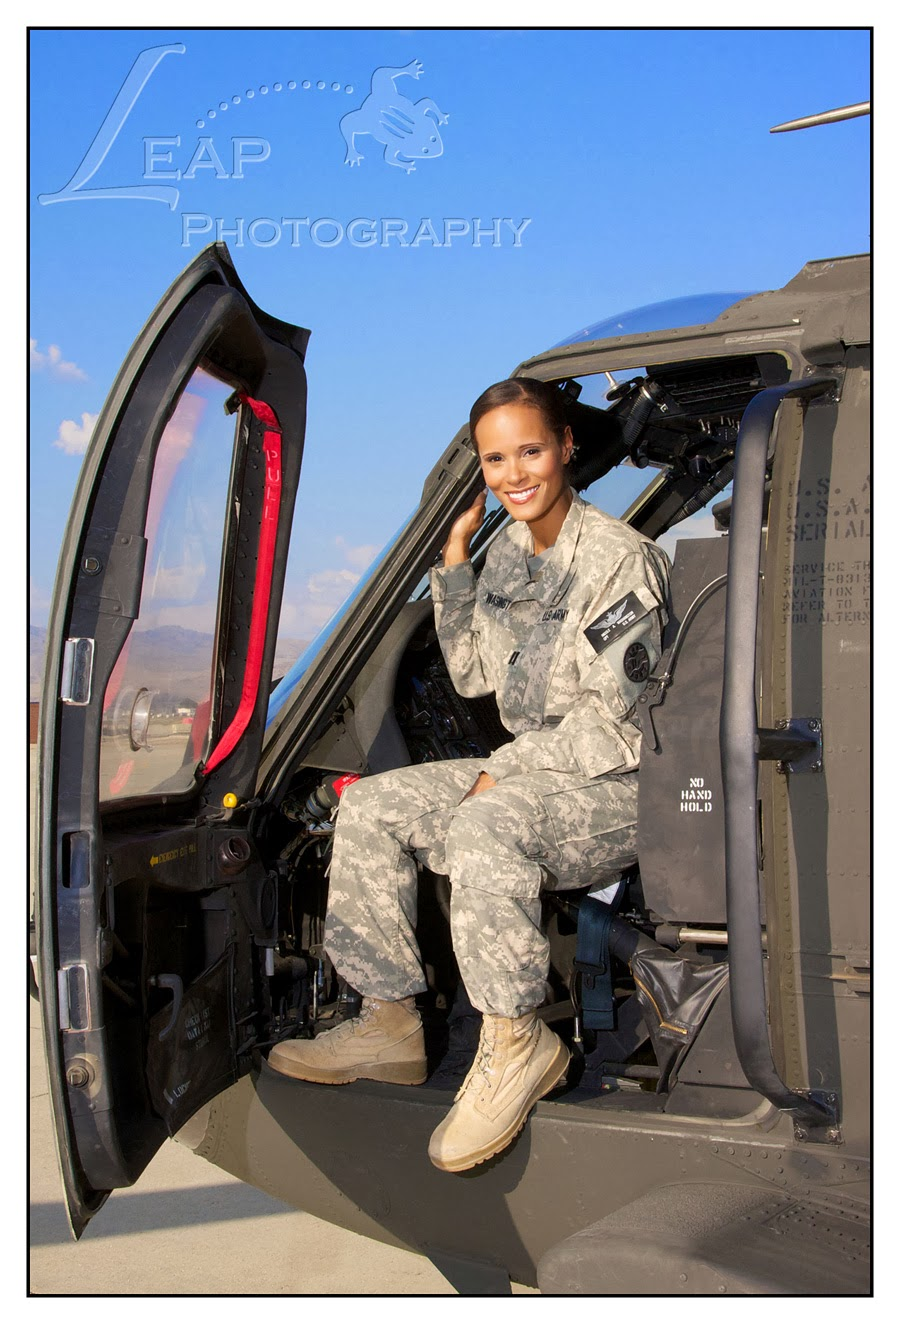 blackhawk for sale helicopter with Nicole Female Black Hawk Helicopter Pilot Herlife Magazine Boise Portrait Photographer on Robinson R22 Wiring Diagram likewise Bell UH 1 Iroquois moreover Nicole Female Black Hawk Helicopter Pilot Herlife Magazine Boise Portrait Photographer likewise Stealth Helicopter together with Mh 60l Dap.